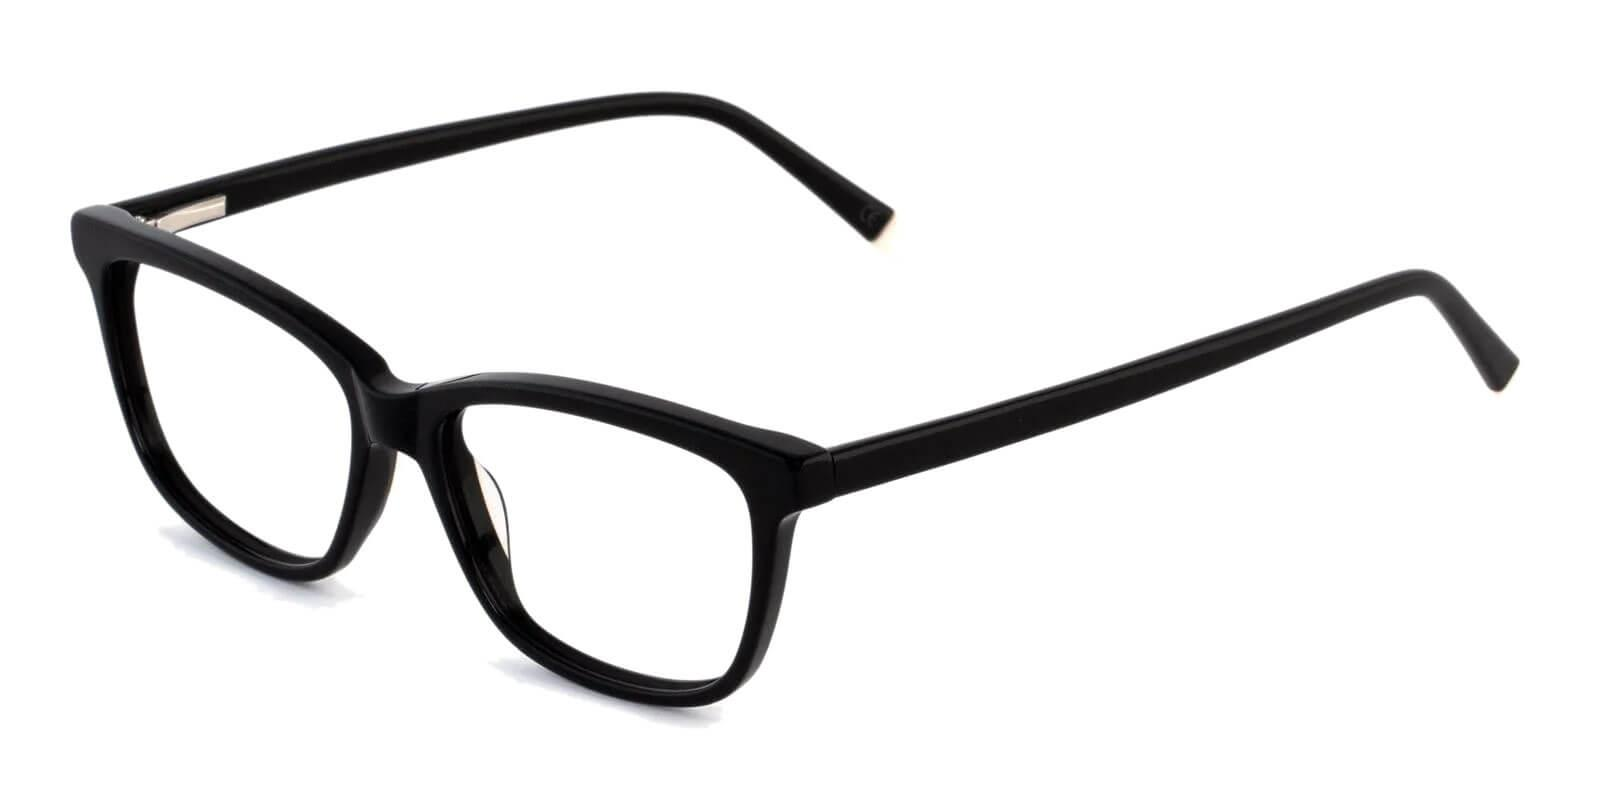 Zion Black Acetate Eyeglasses , SpringHinges , UniversalBridgeFit Frames from ABBE Glasses